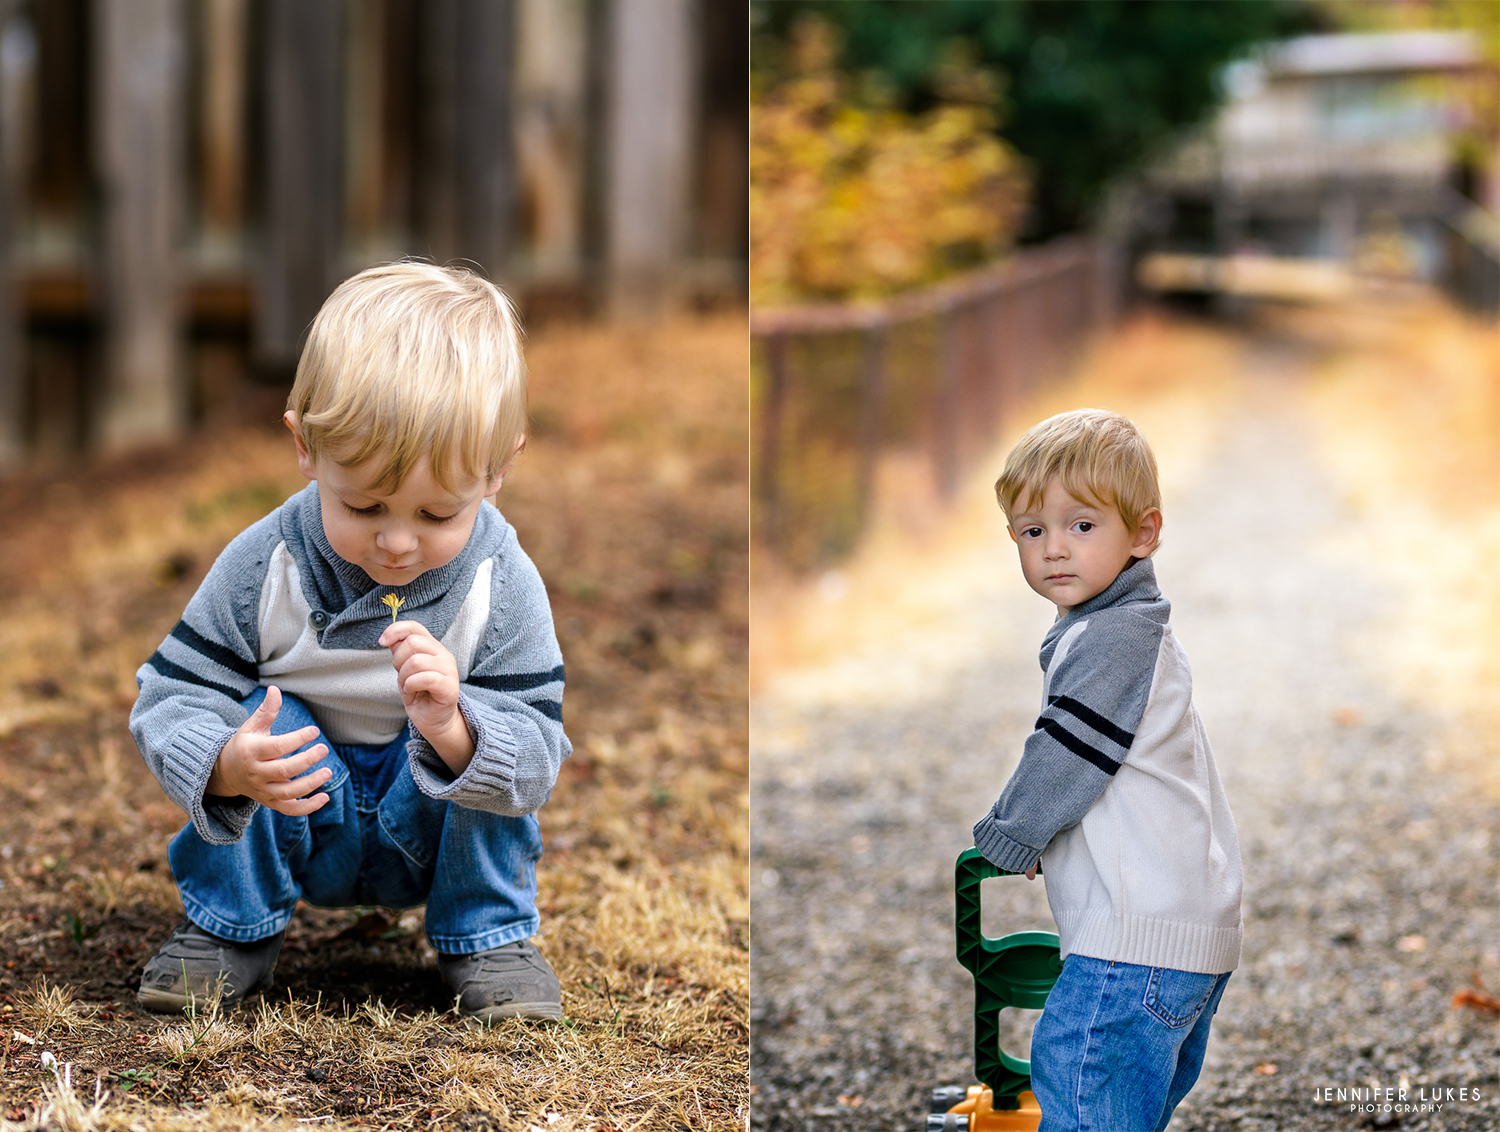 Toddler boy in shawl collar sweater outdoors picking flowers and pushing a toy lawn mower.